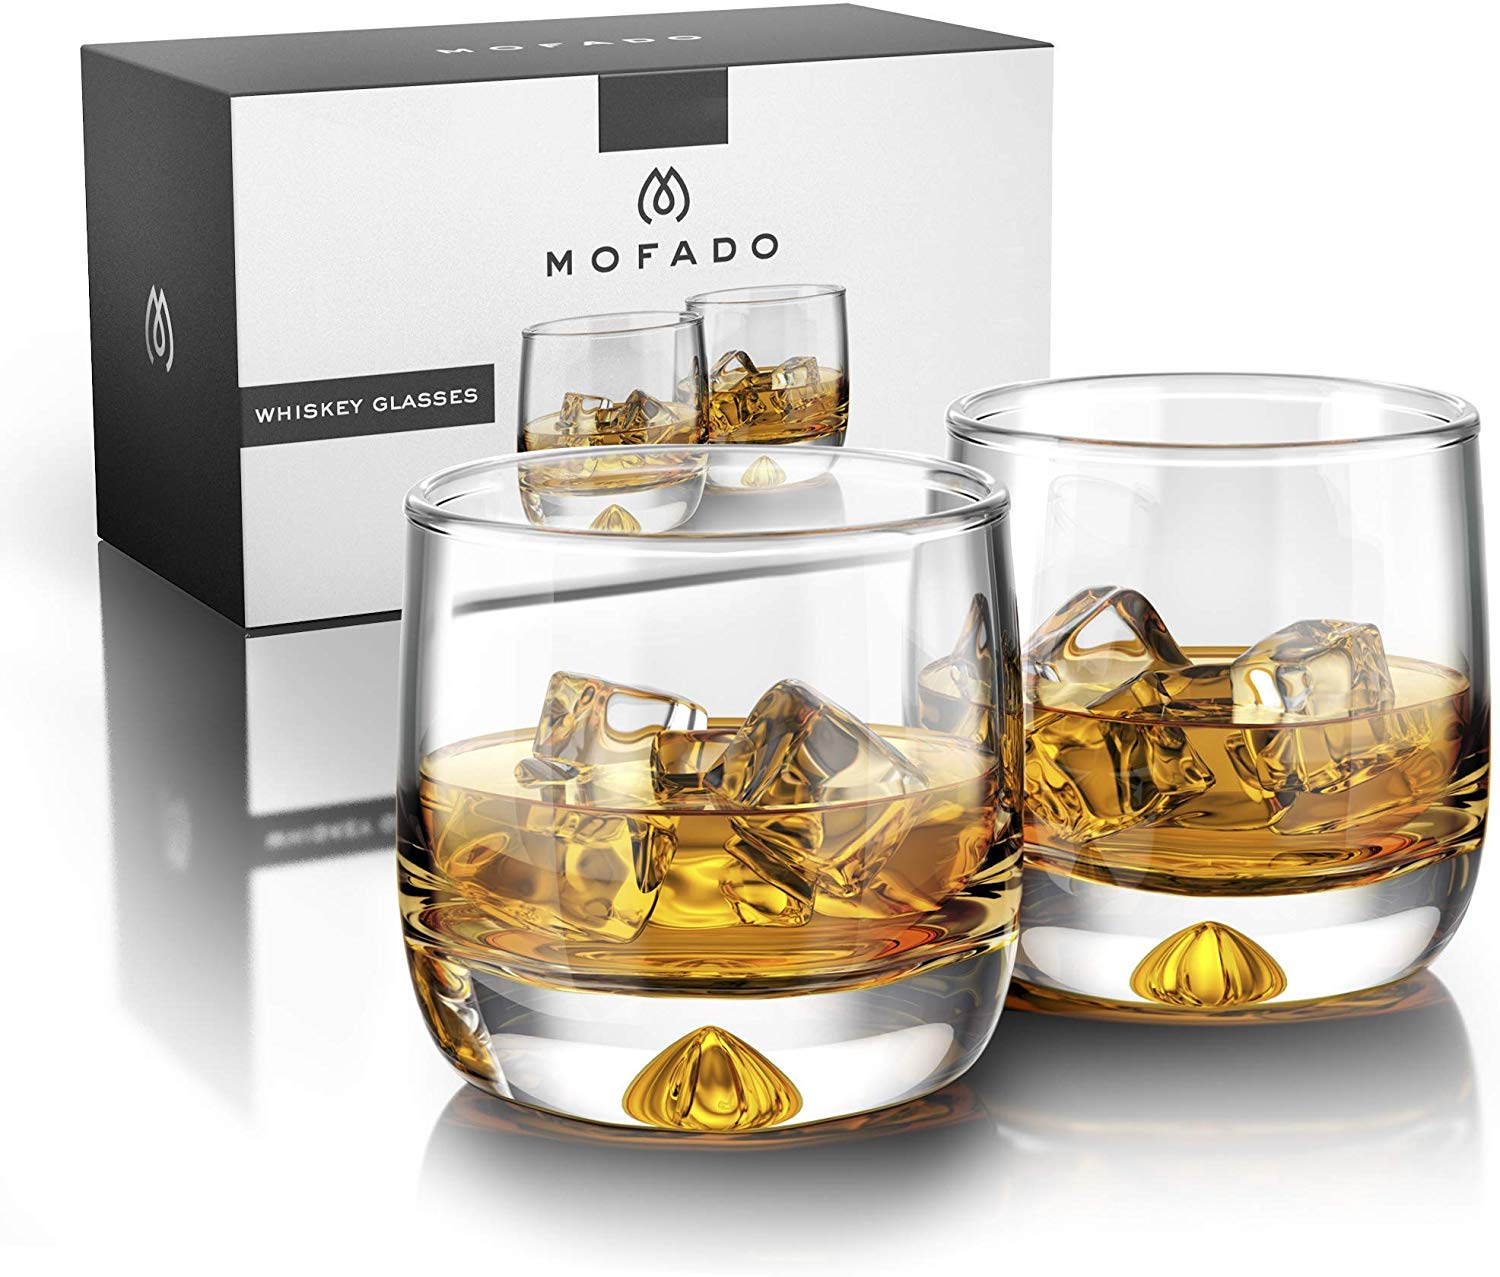 Mofado Crystal Whiskey Glasses - Best Gifts for Dad 2020